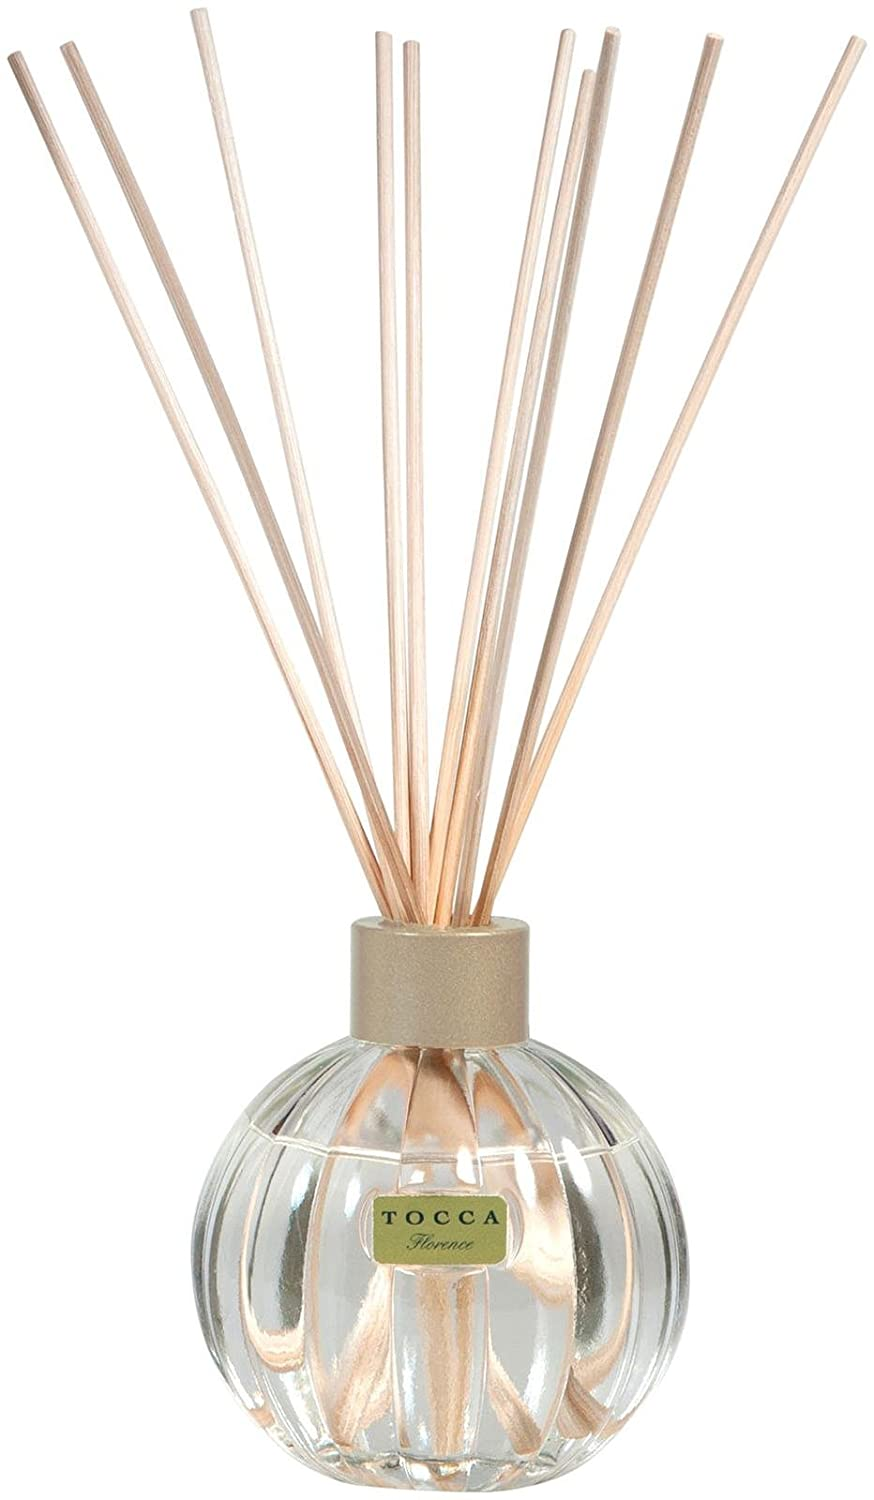 Tocca Fragrance Reed Diffuser - Florence - 175 ml